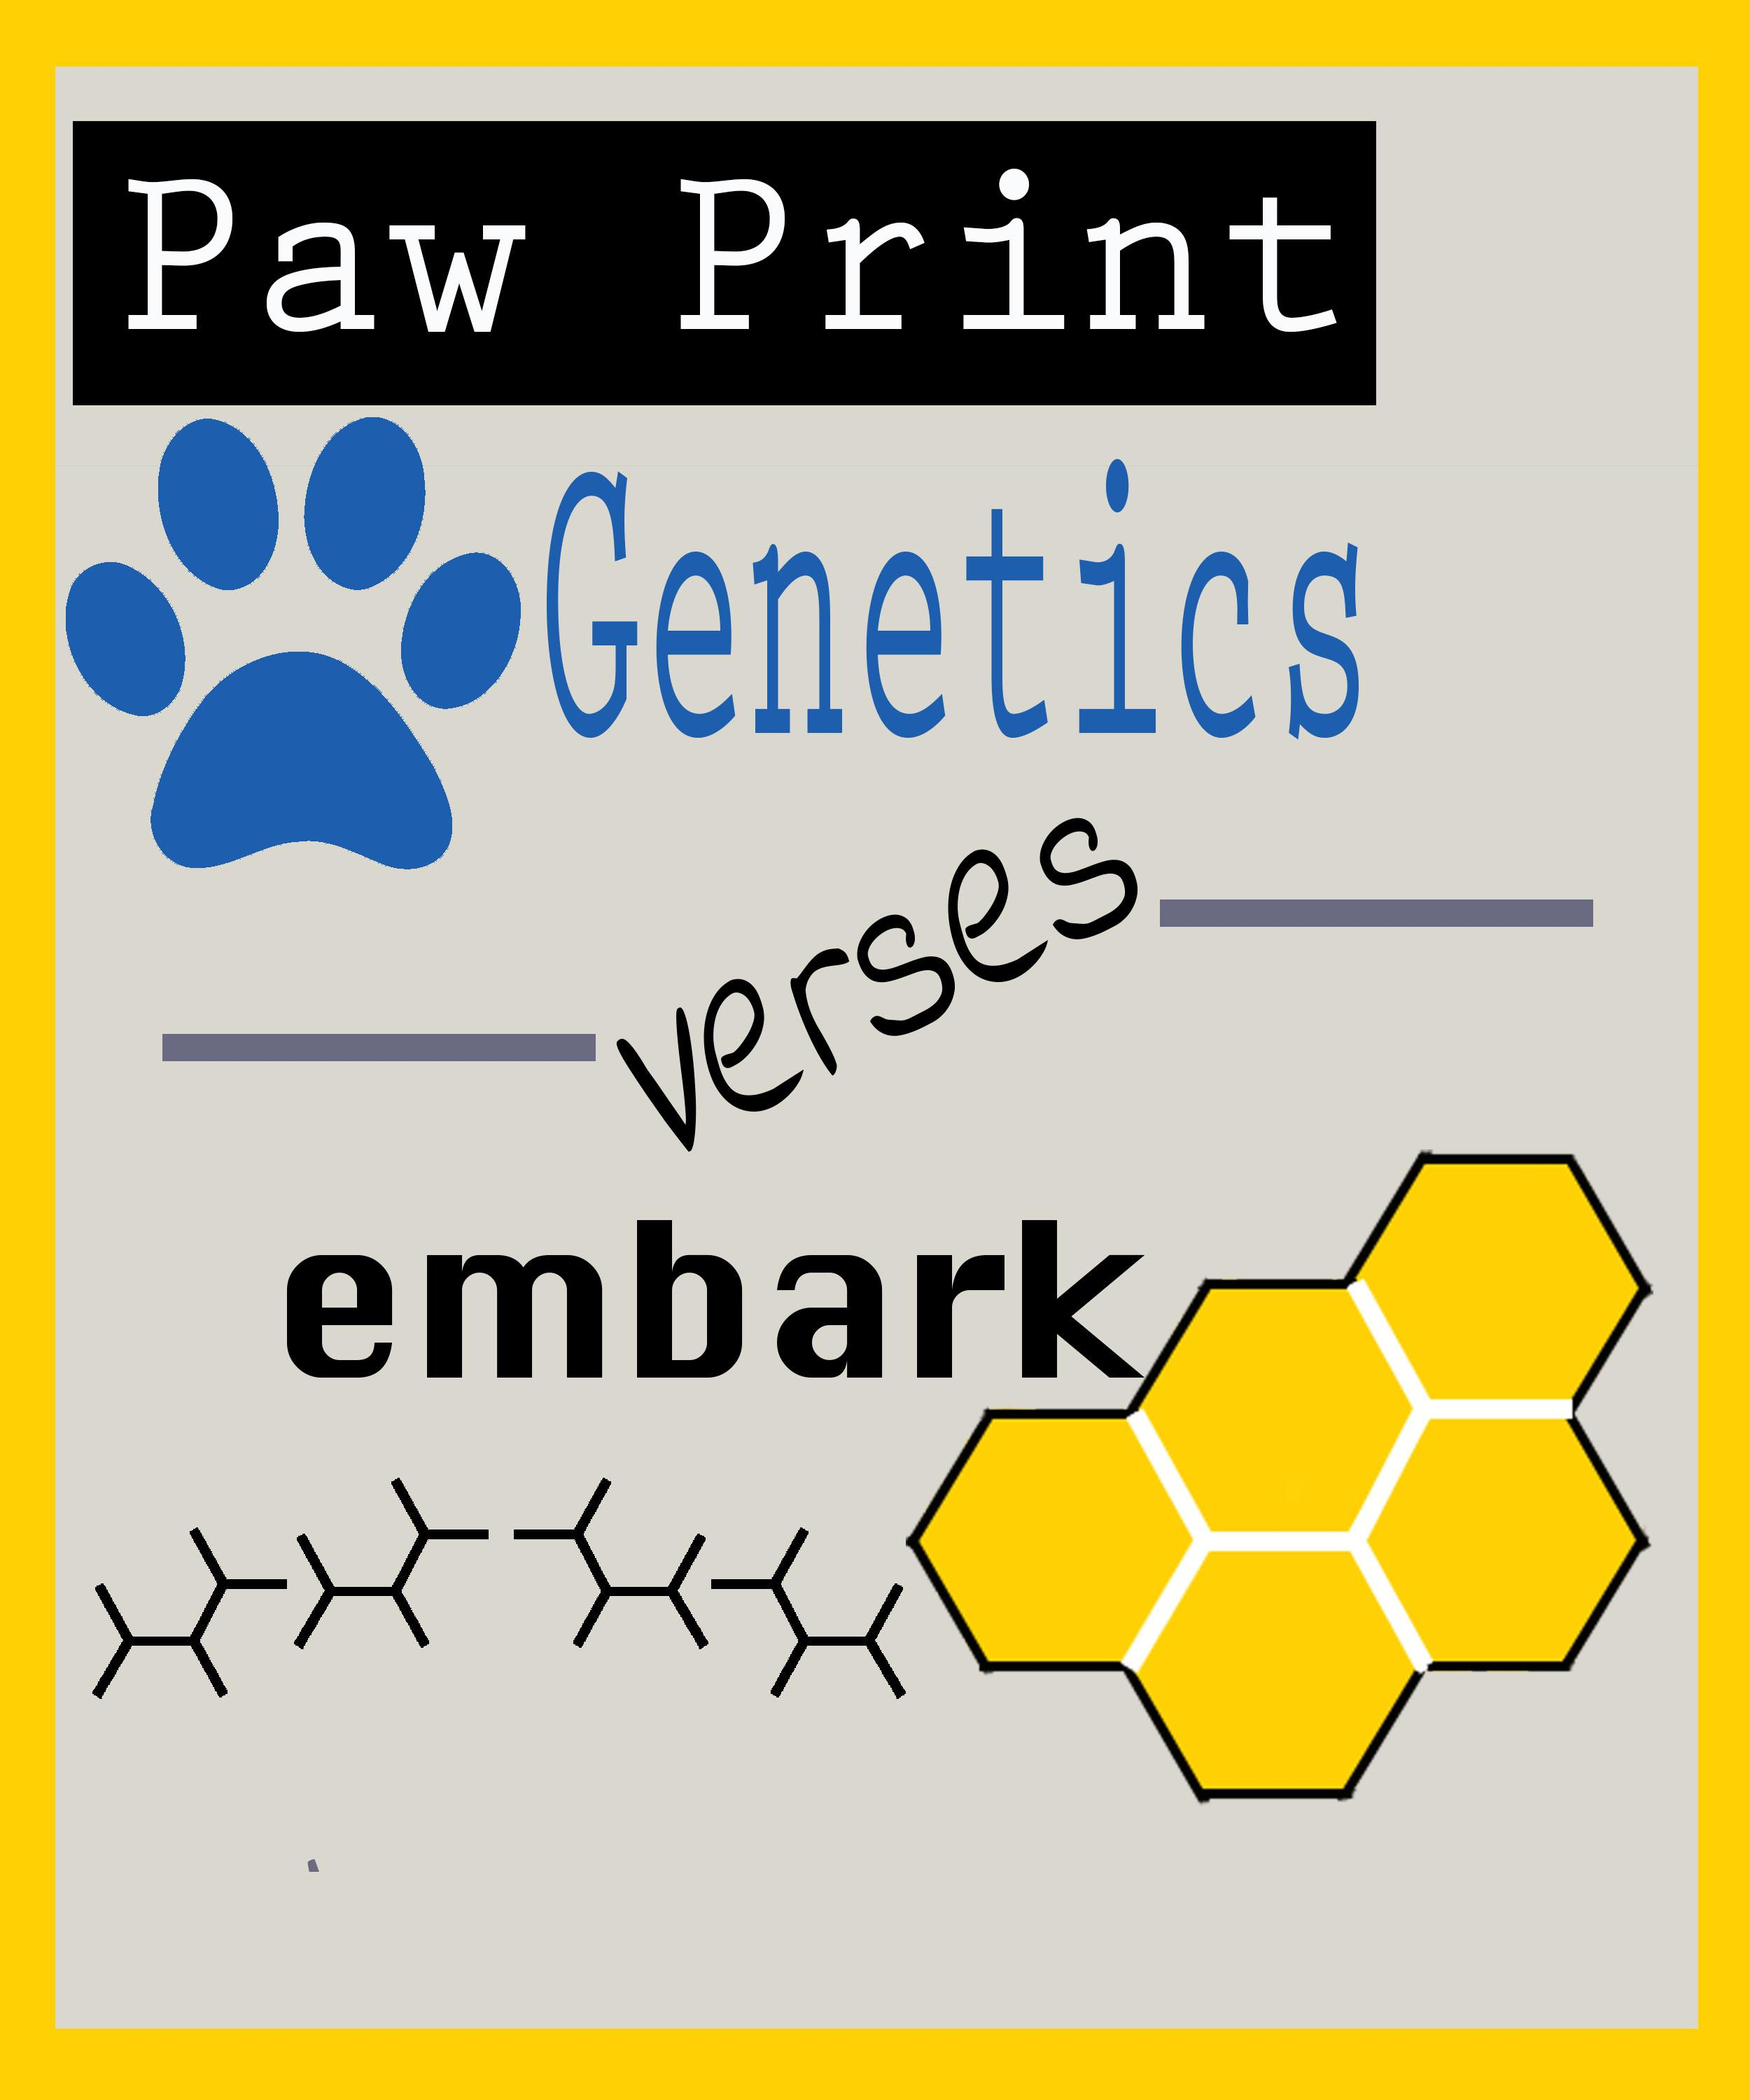 Paw Print Vs Embark - Timberidge Goldendoodles